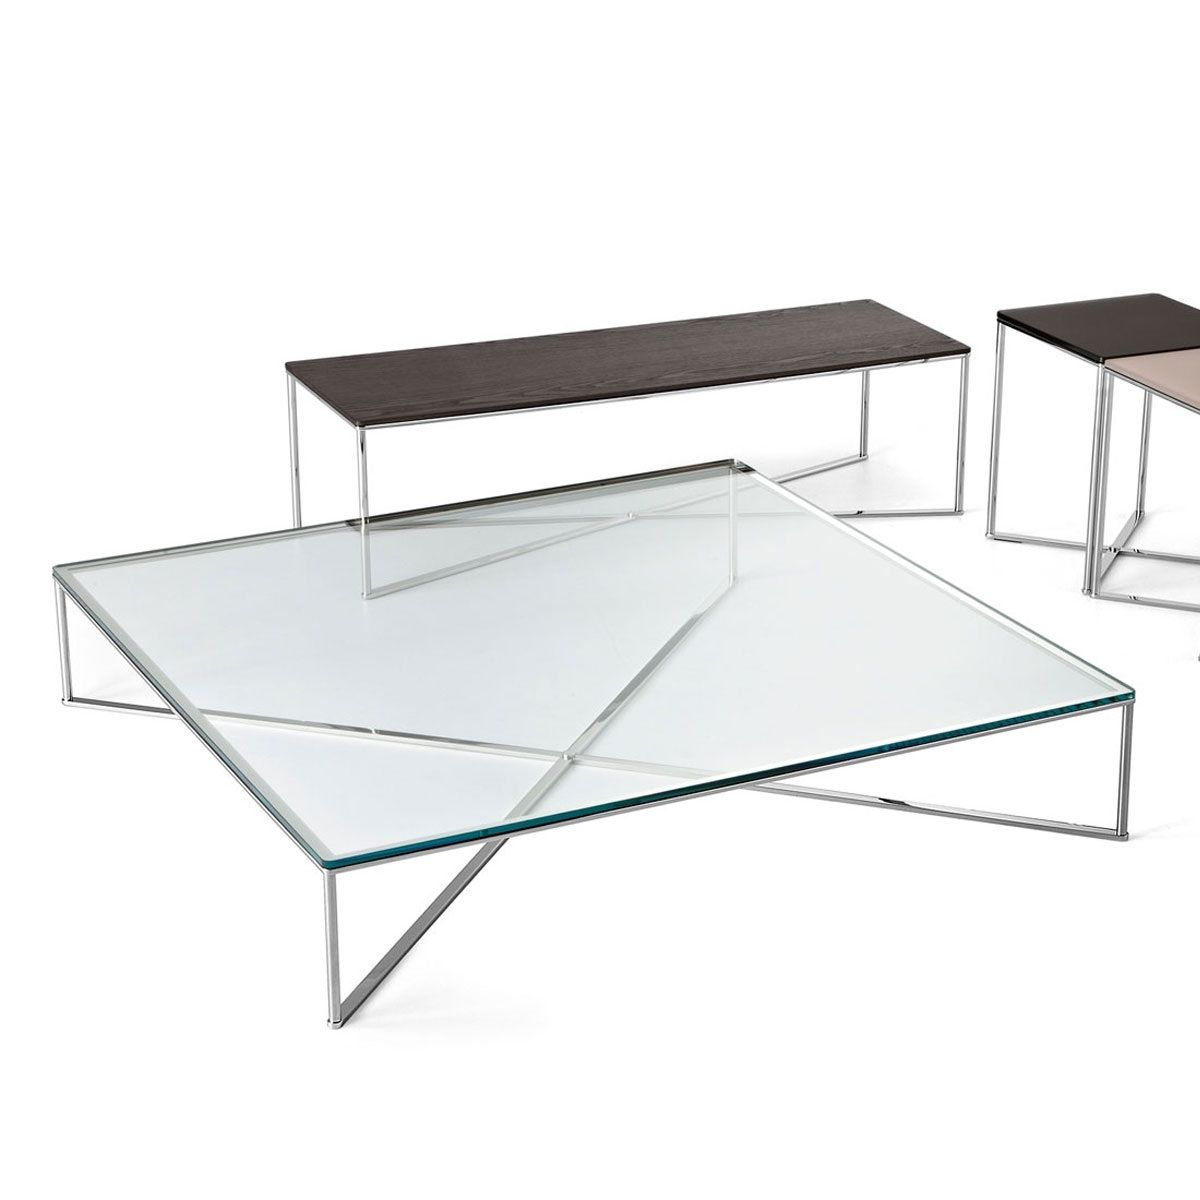 20 large square glass coffee table expensive home office furniture 20 large square glass coffee table expensive home office furniture check more at http watchthetrailerfo